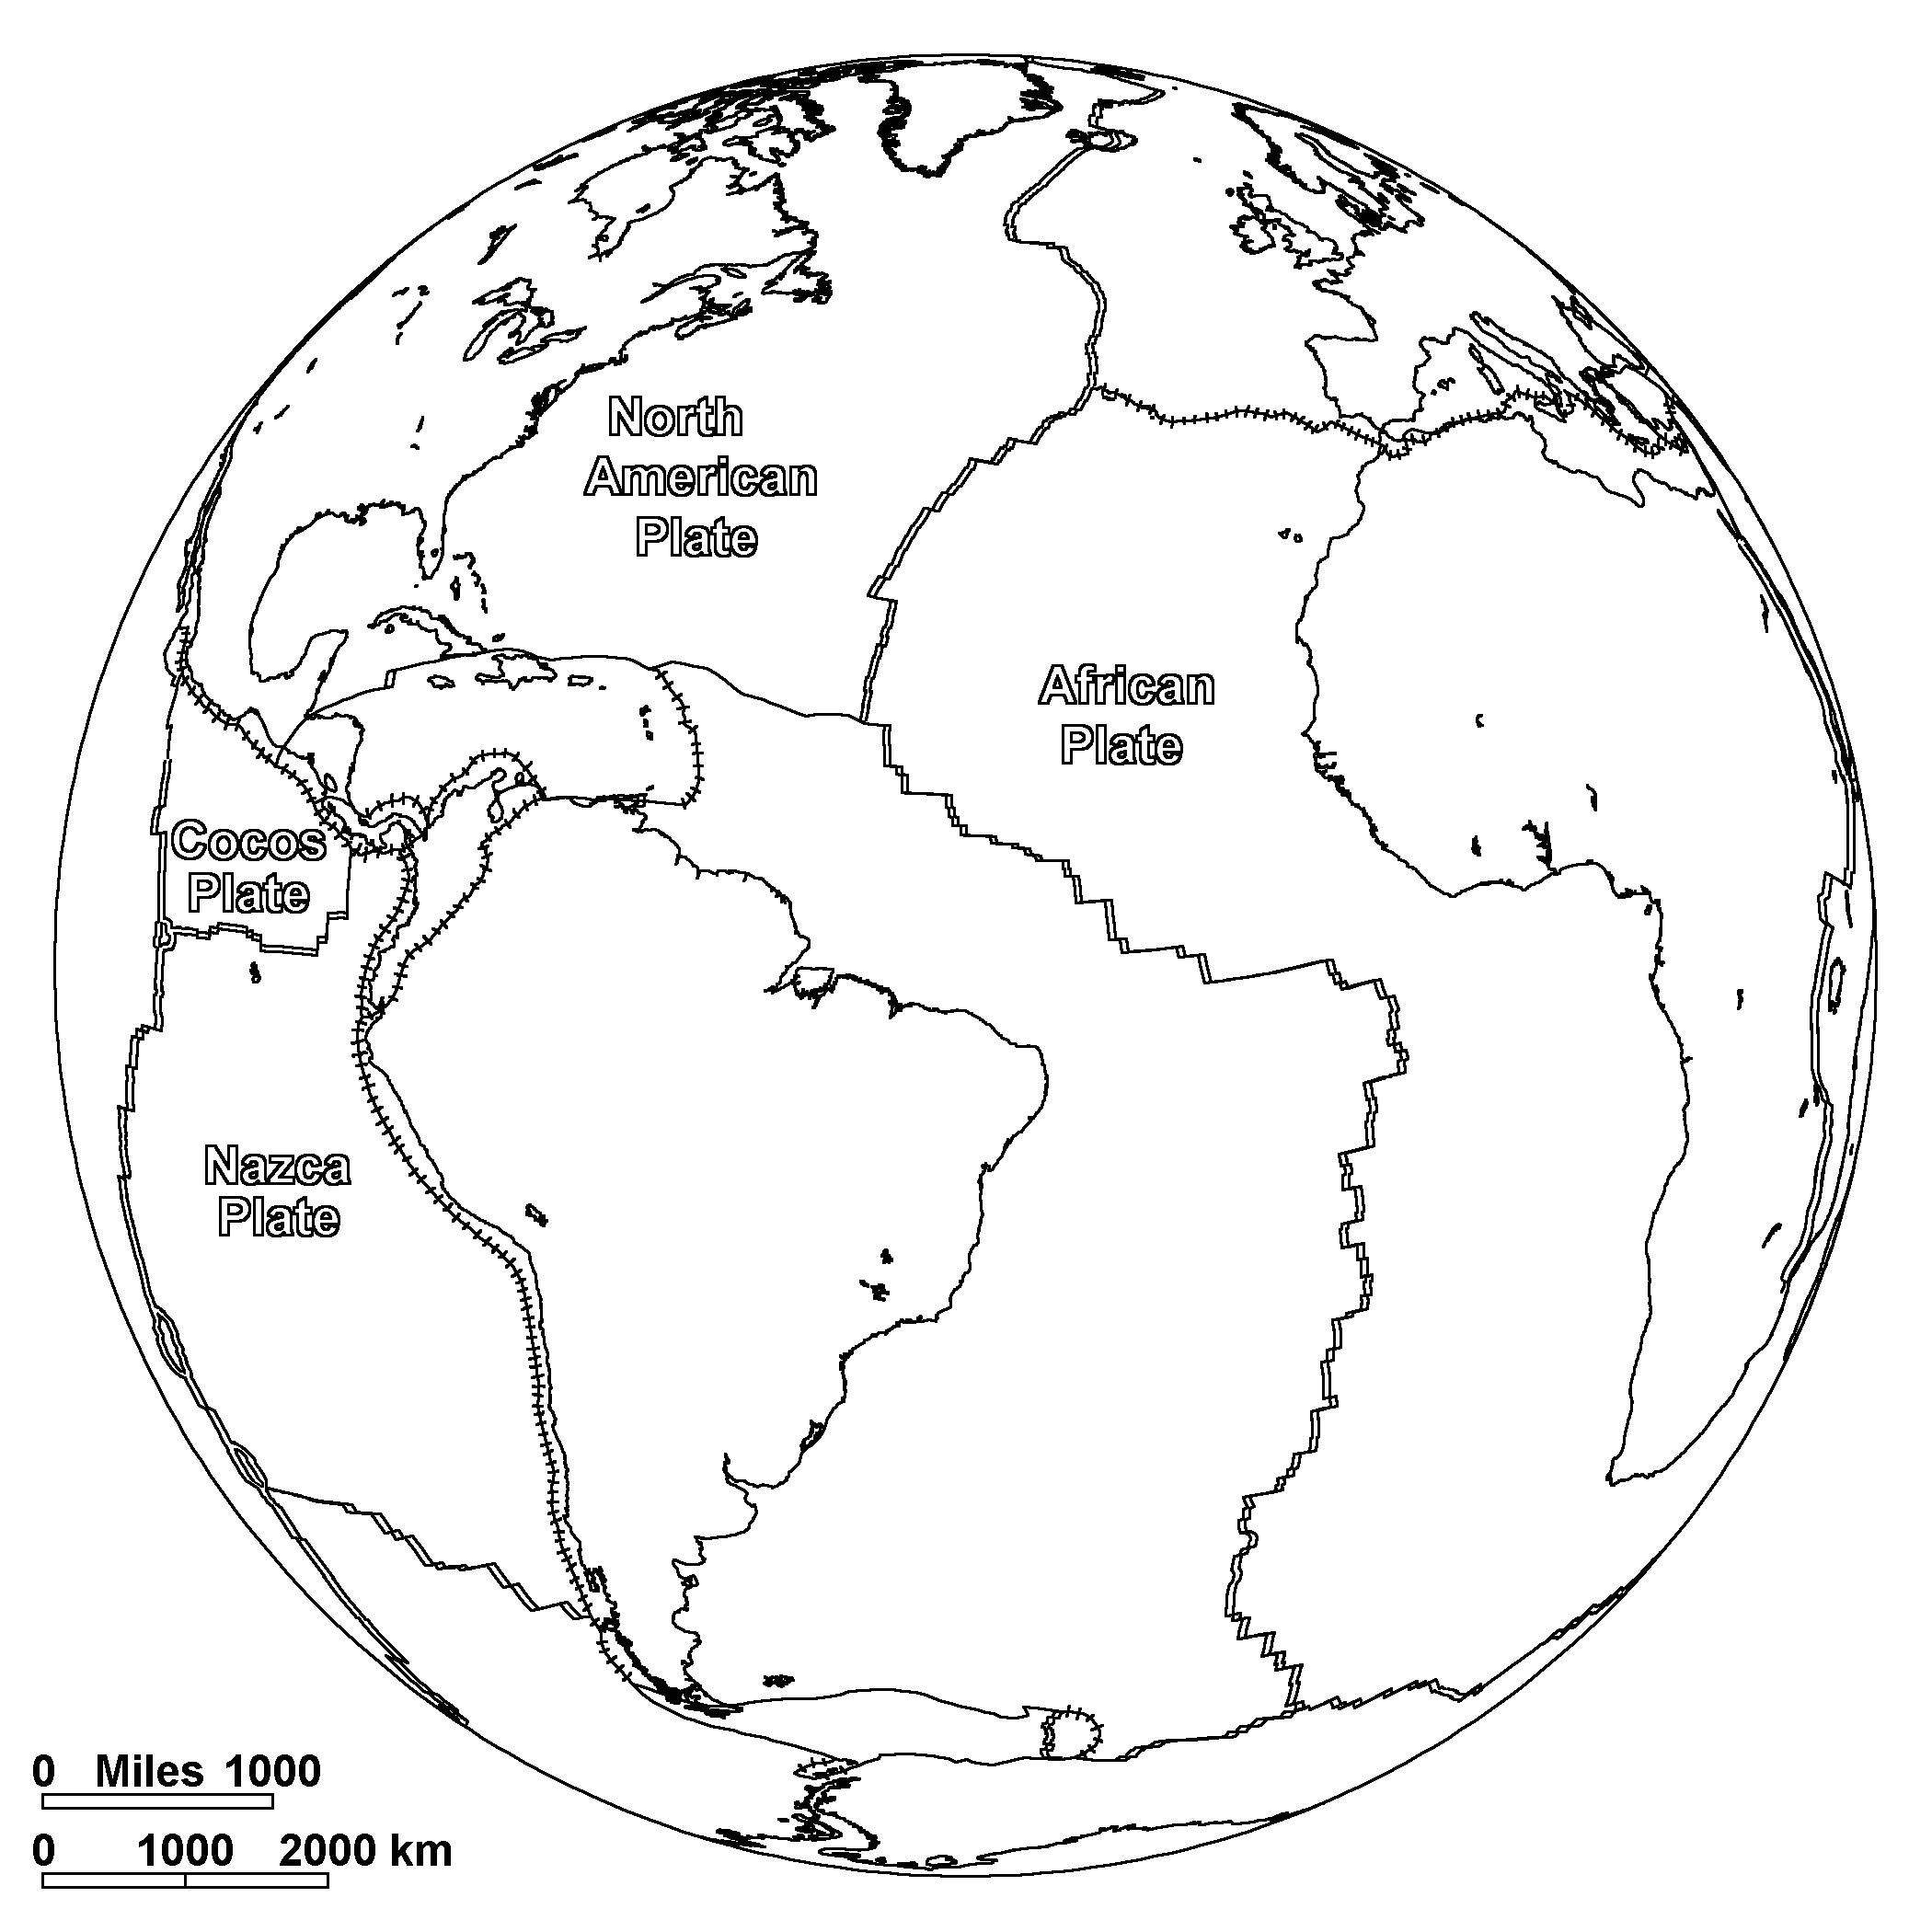 world map coloring page - Romeo.landinez.co